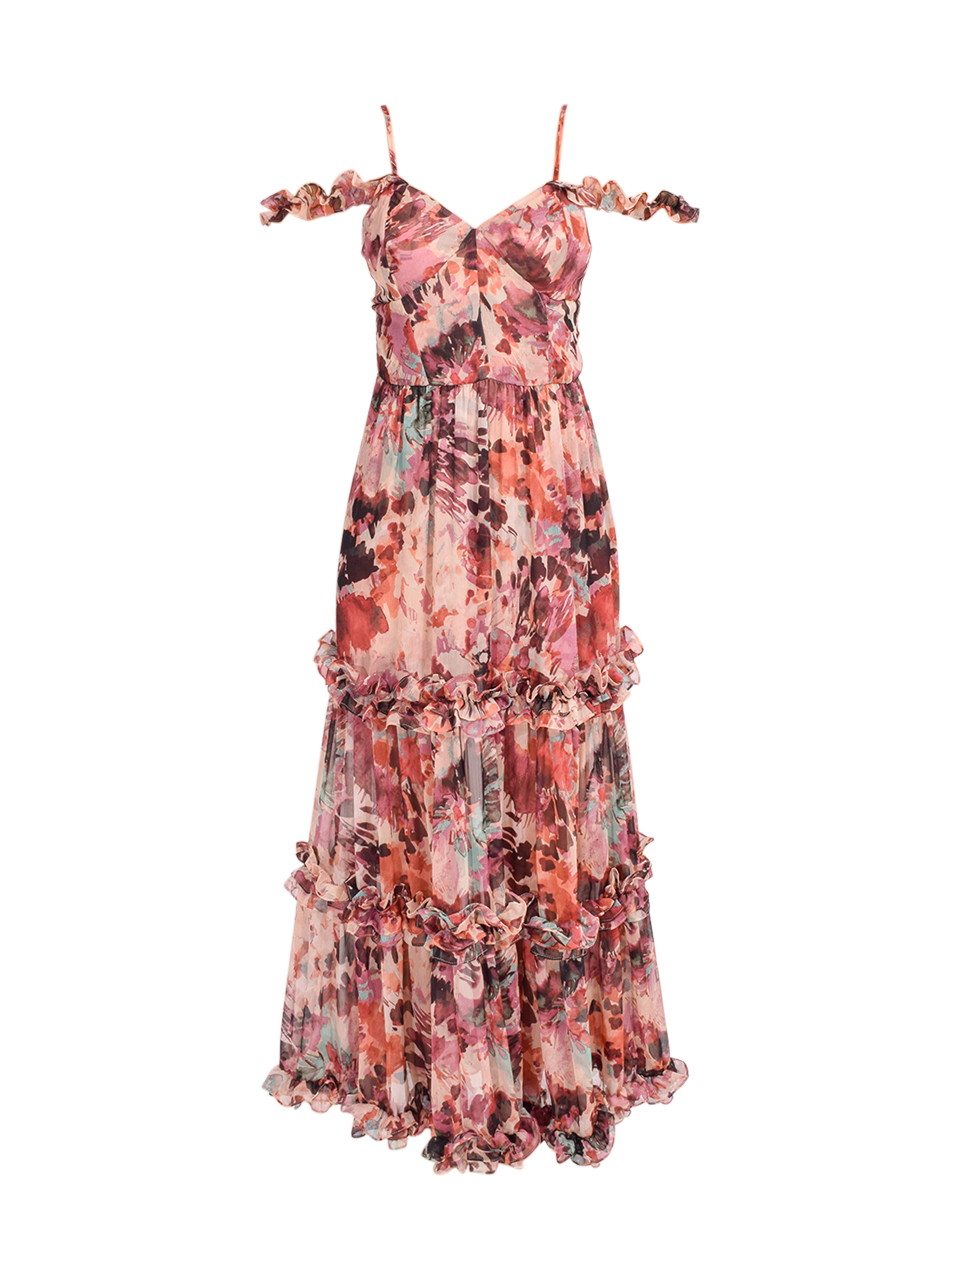 MISA Avery Maxi Dress in Floradream Product Shot